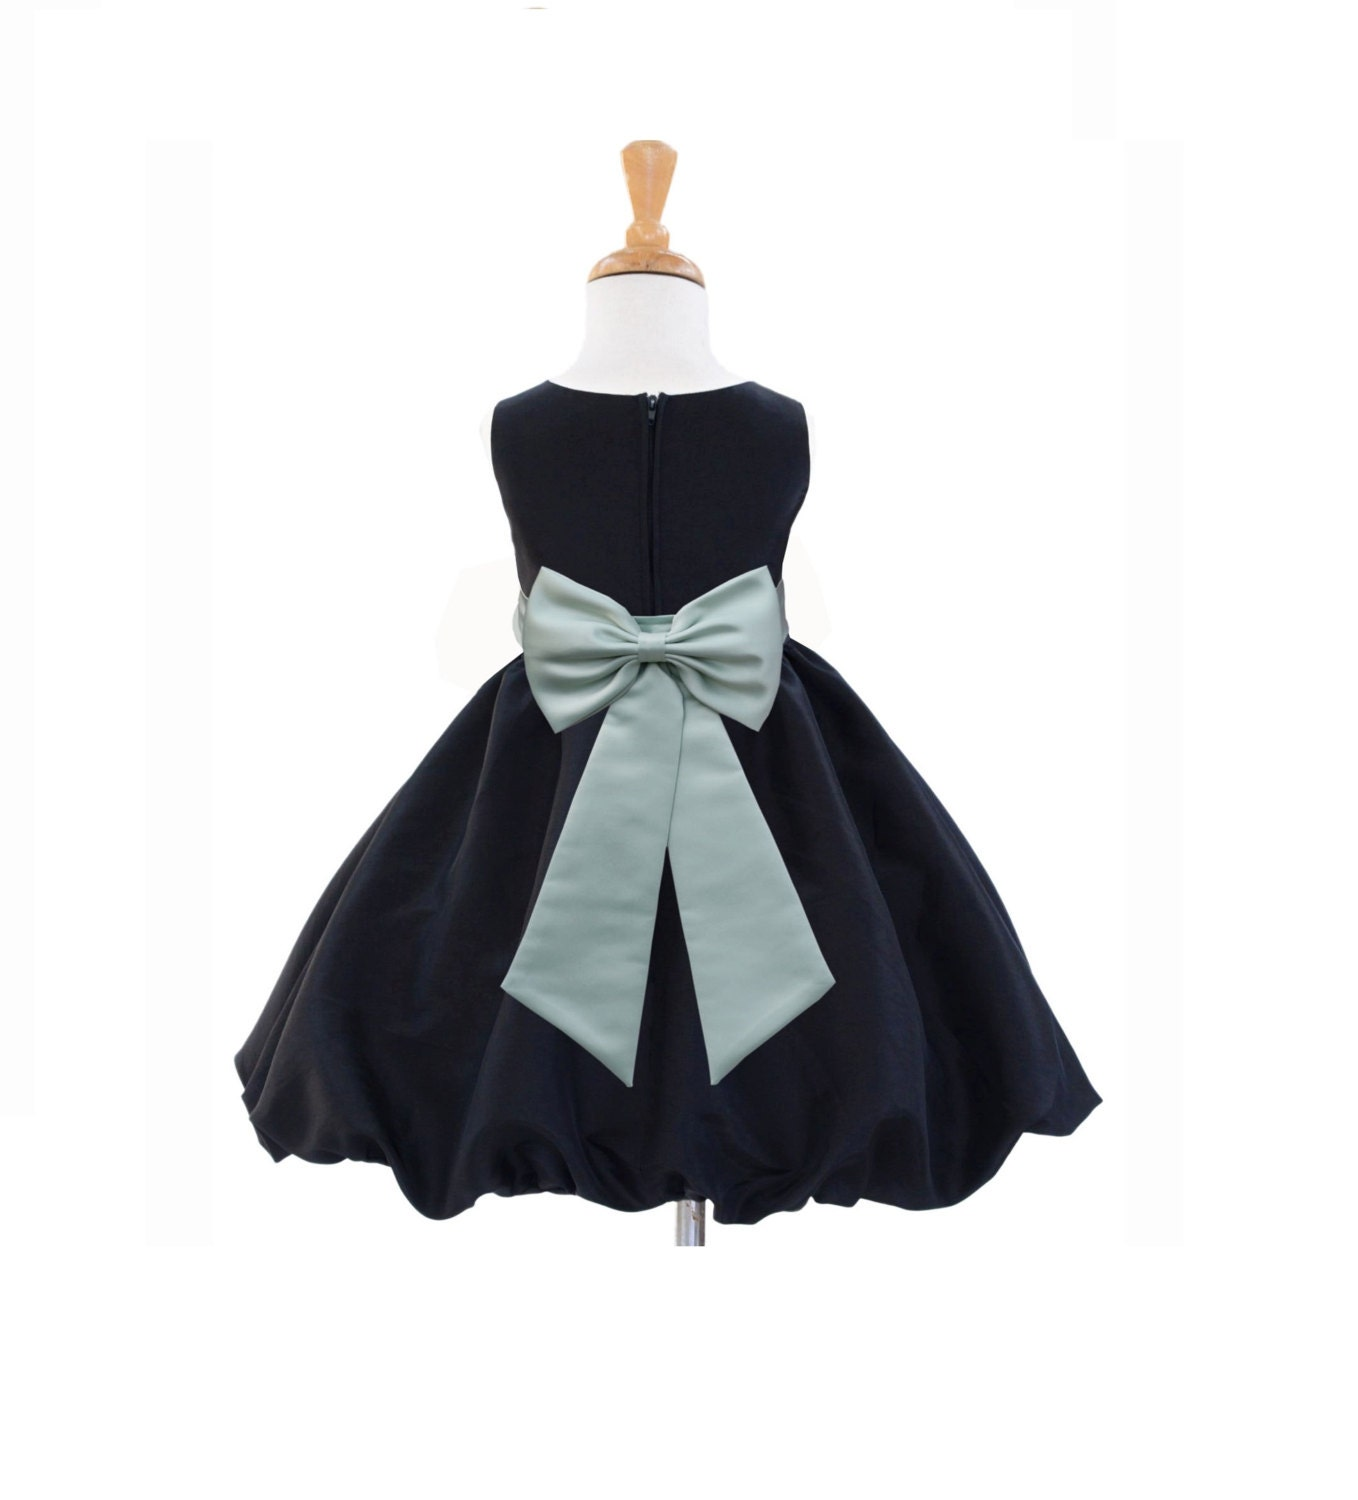 Black Taffeta Summer Flower Girl dress tiebow by ekidsbridalusa